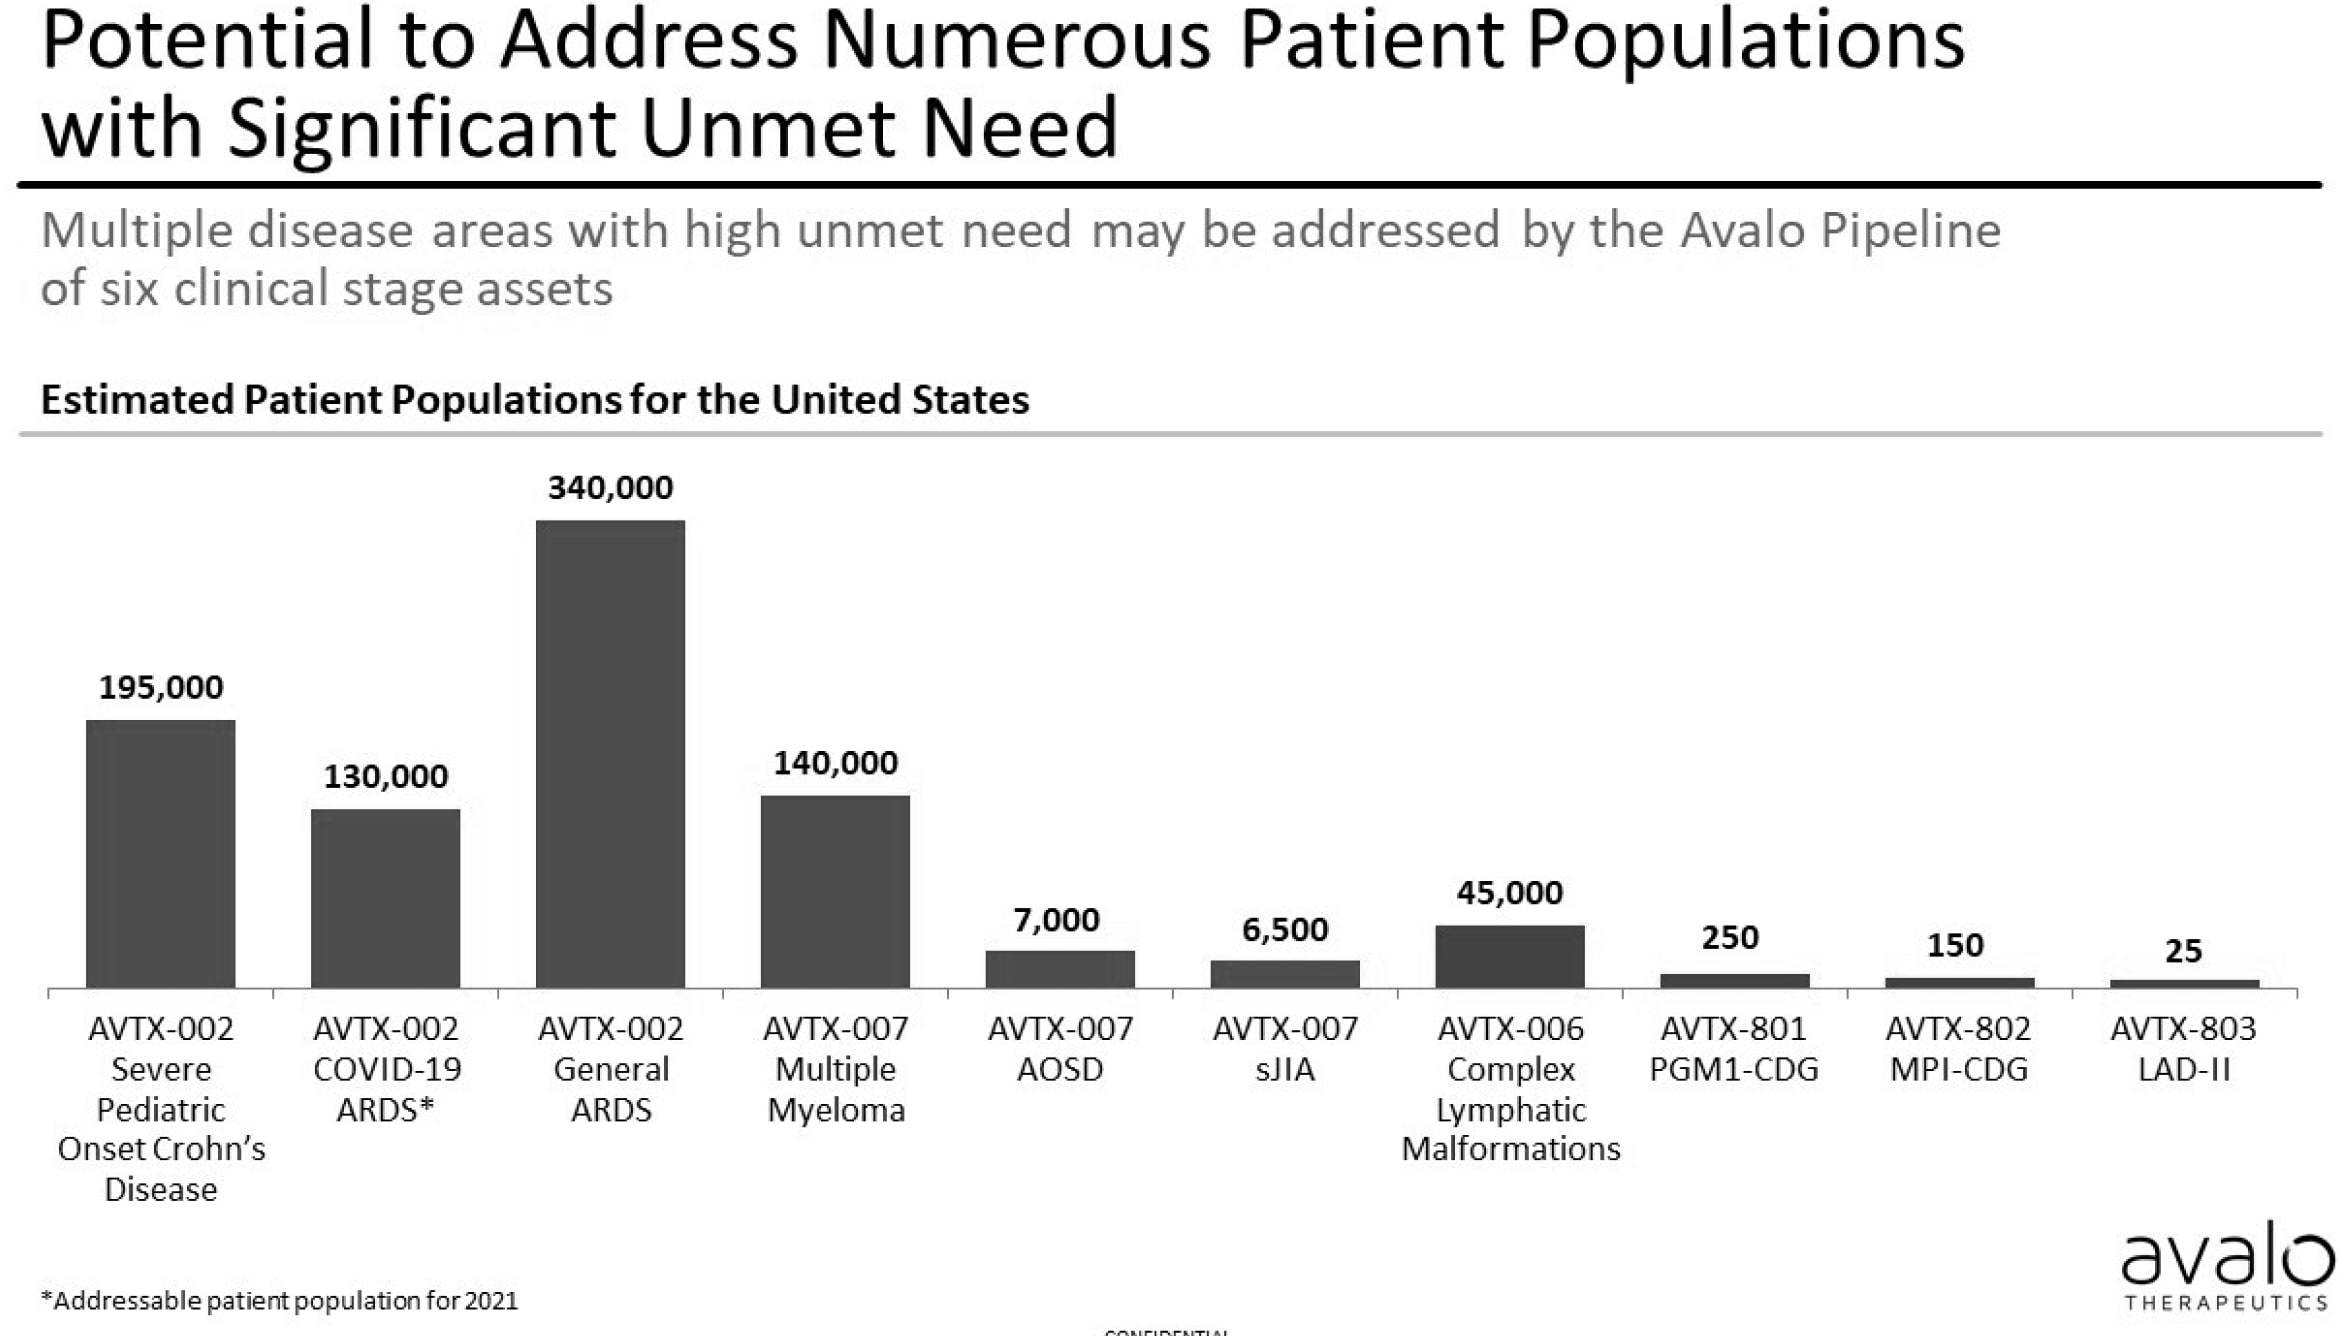 Market Need: Addressing Sizeable Patient Populations with Significant Unmet Need